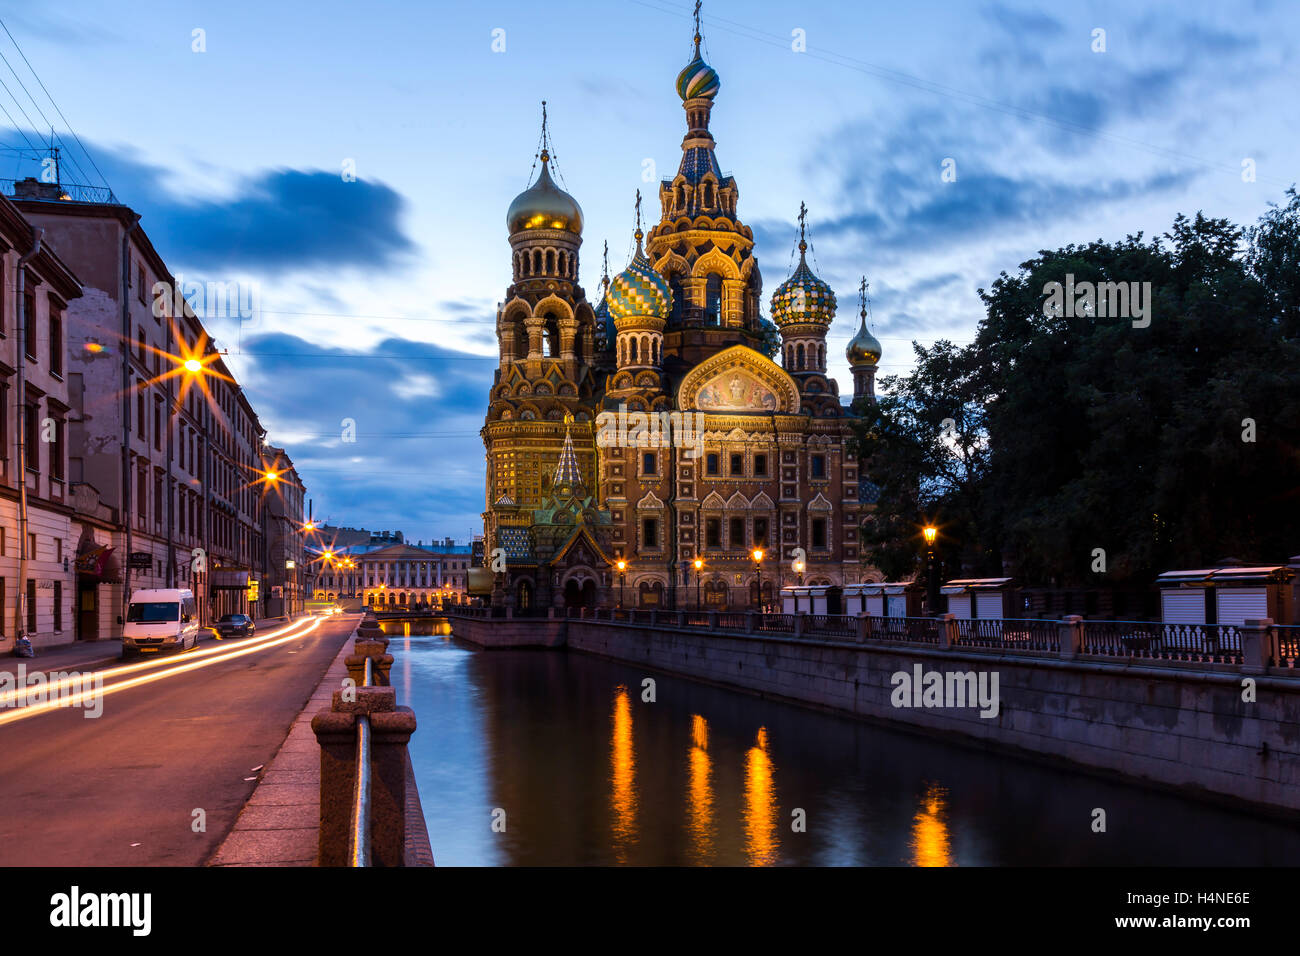 St. Petersburg, Russia. July 2015.  View of the Church of the Savior on Spilled Blood during sunrise. - Stock Image